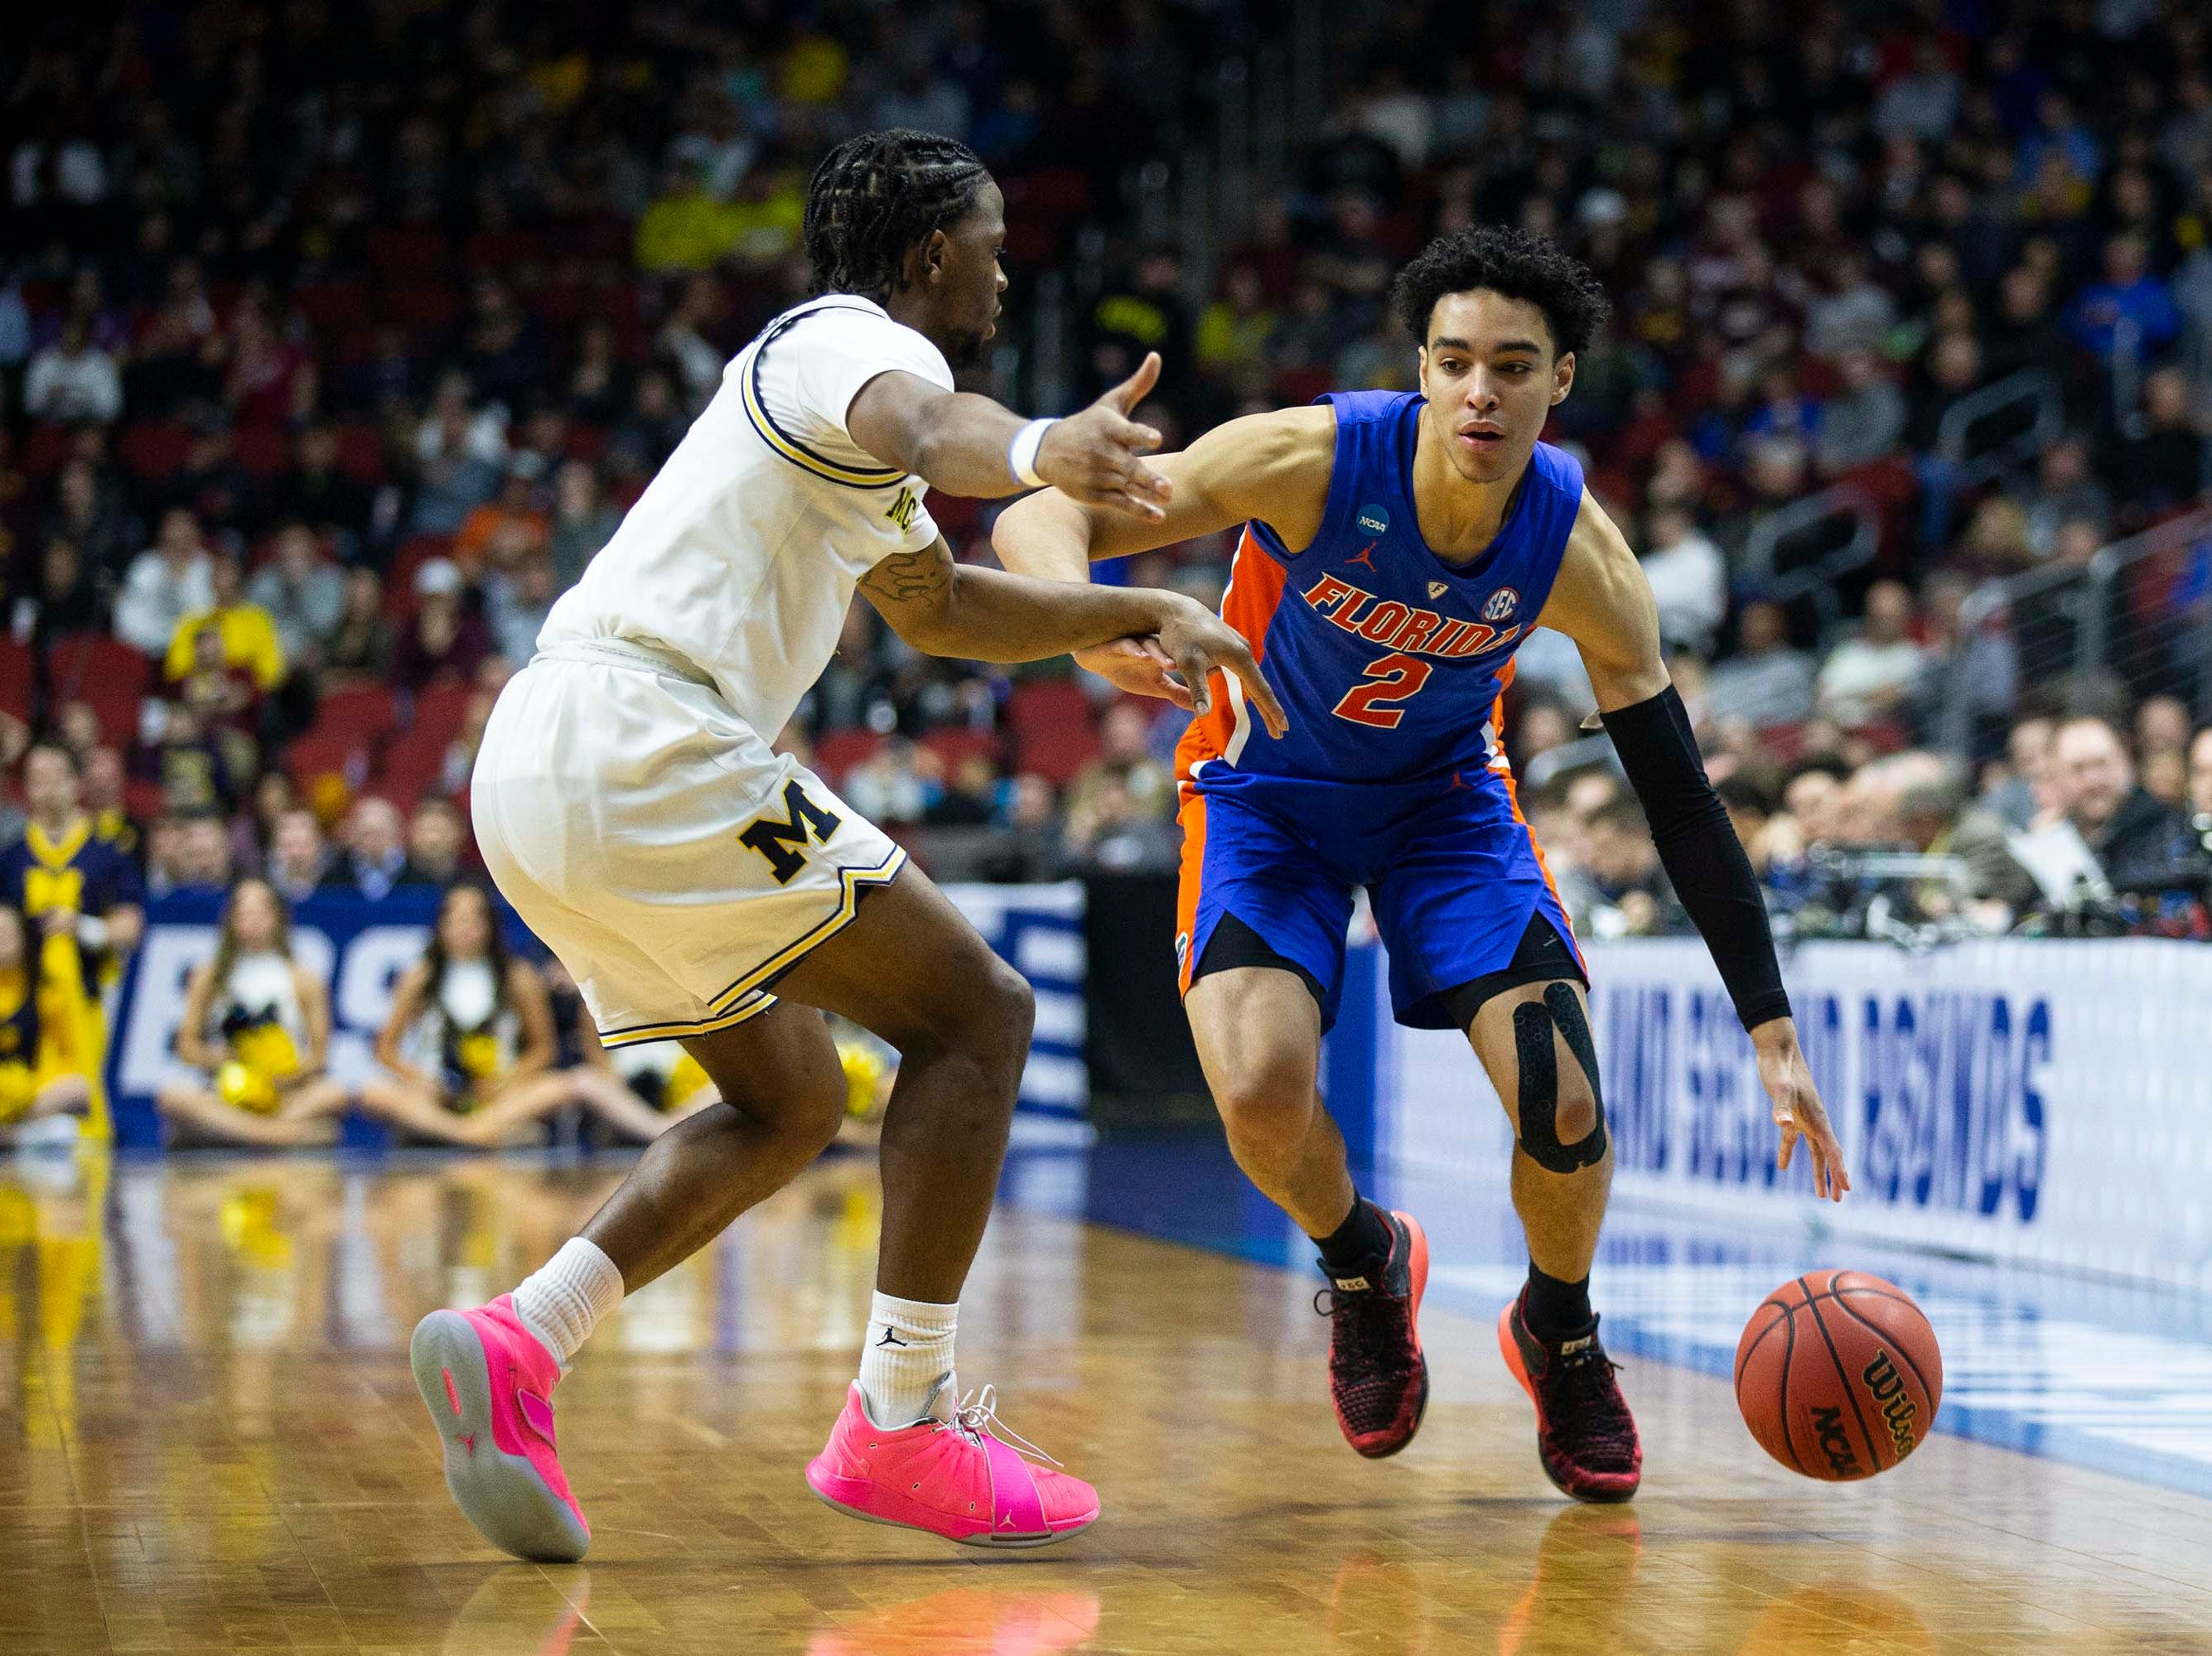 Florida's Andrew Nembhard brings the ball down the court during the NCAA Tournament second-round match-up between Michigan and Florida on Saturday, March 23, 2019, in Wells Fargo Arena in Des Moines, Iowa.